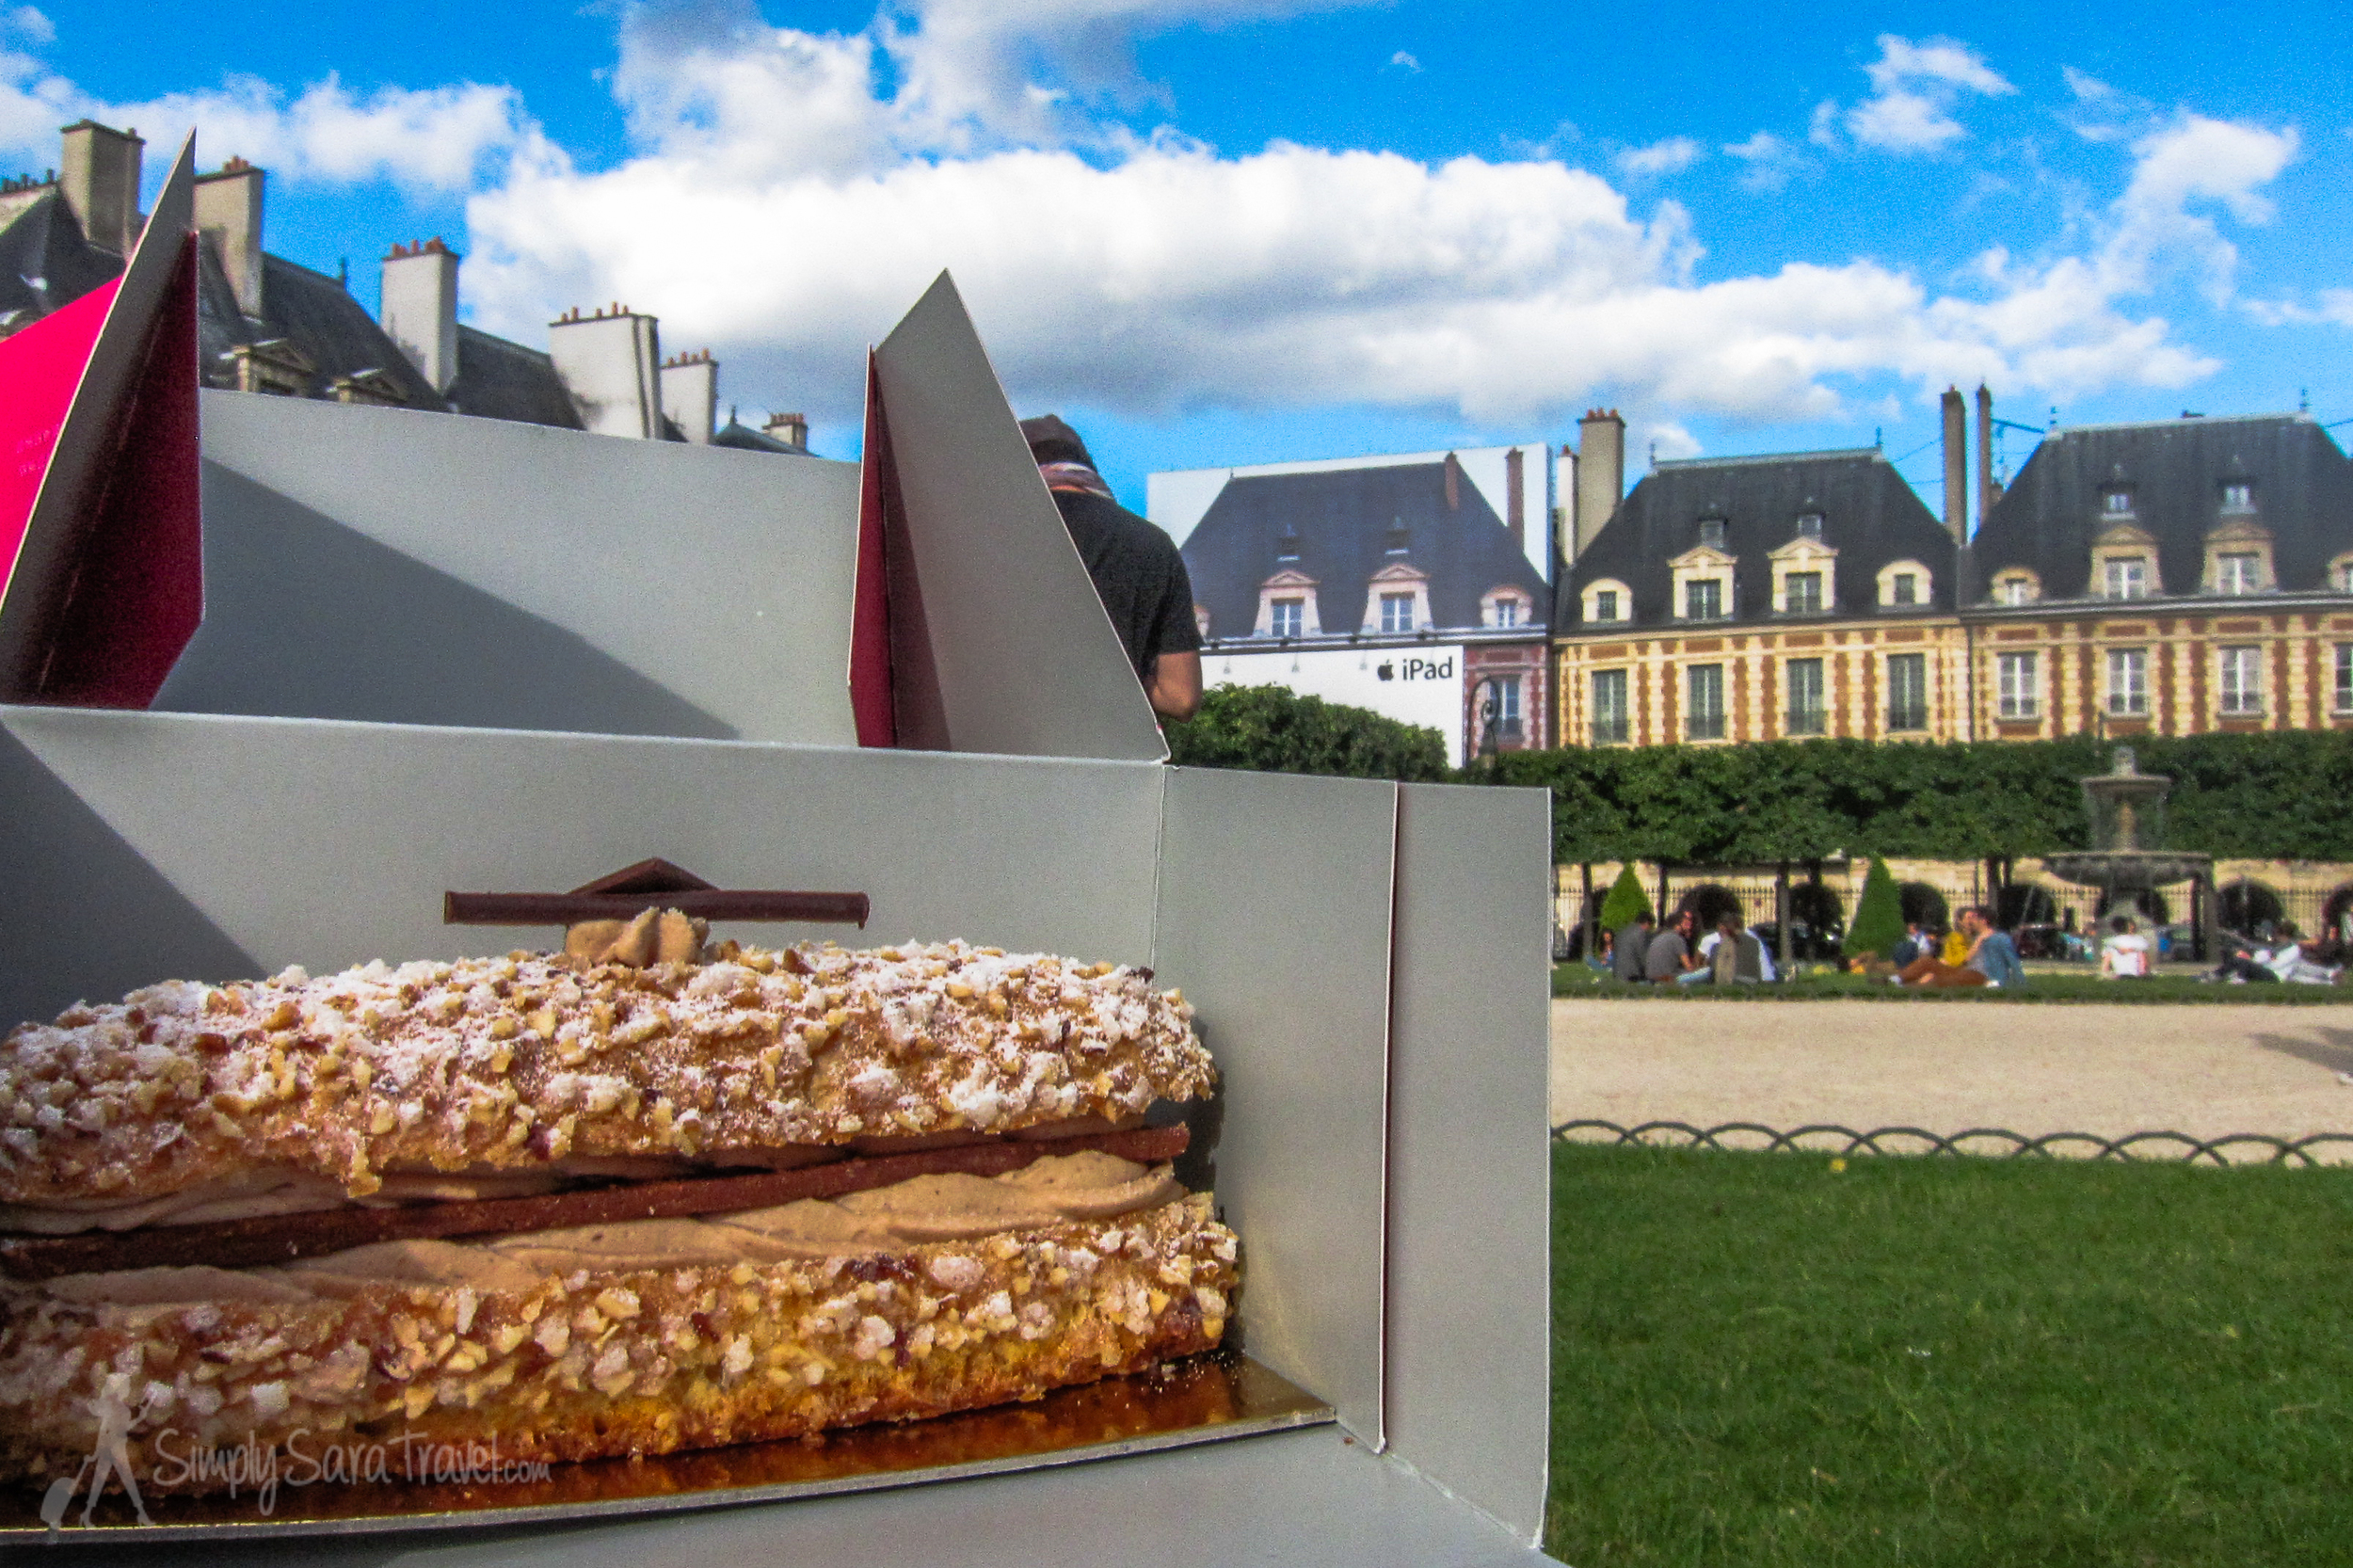 Stopping at  Carette for a pastry and/or macarons is always a good idea before finding a spot to sit on a bench or on the lawn. In fact, if the aristocracy didn't do the same, they missed out!